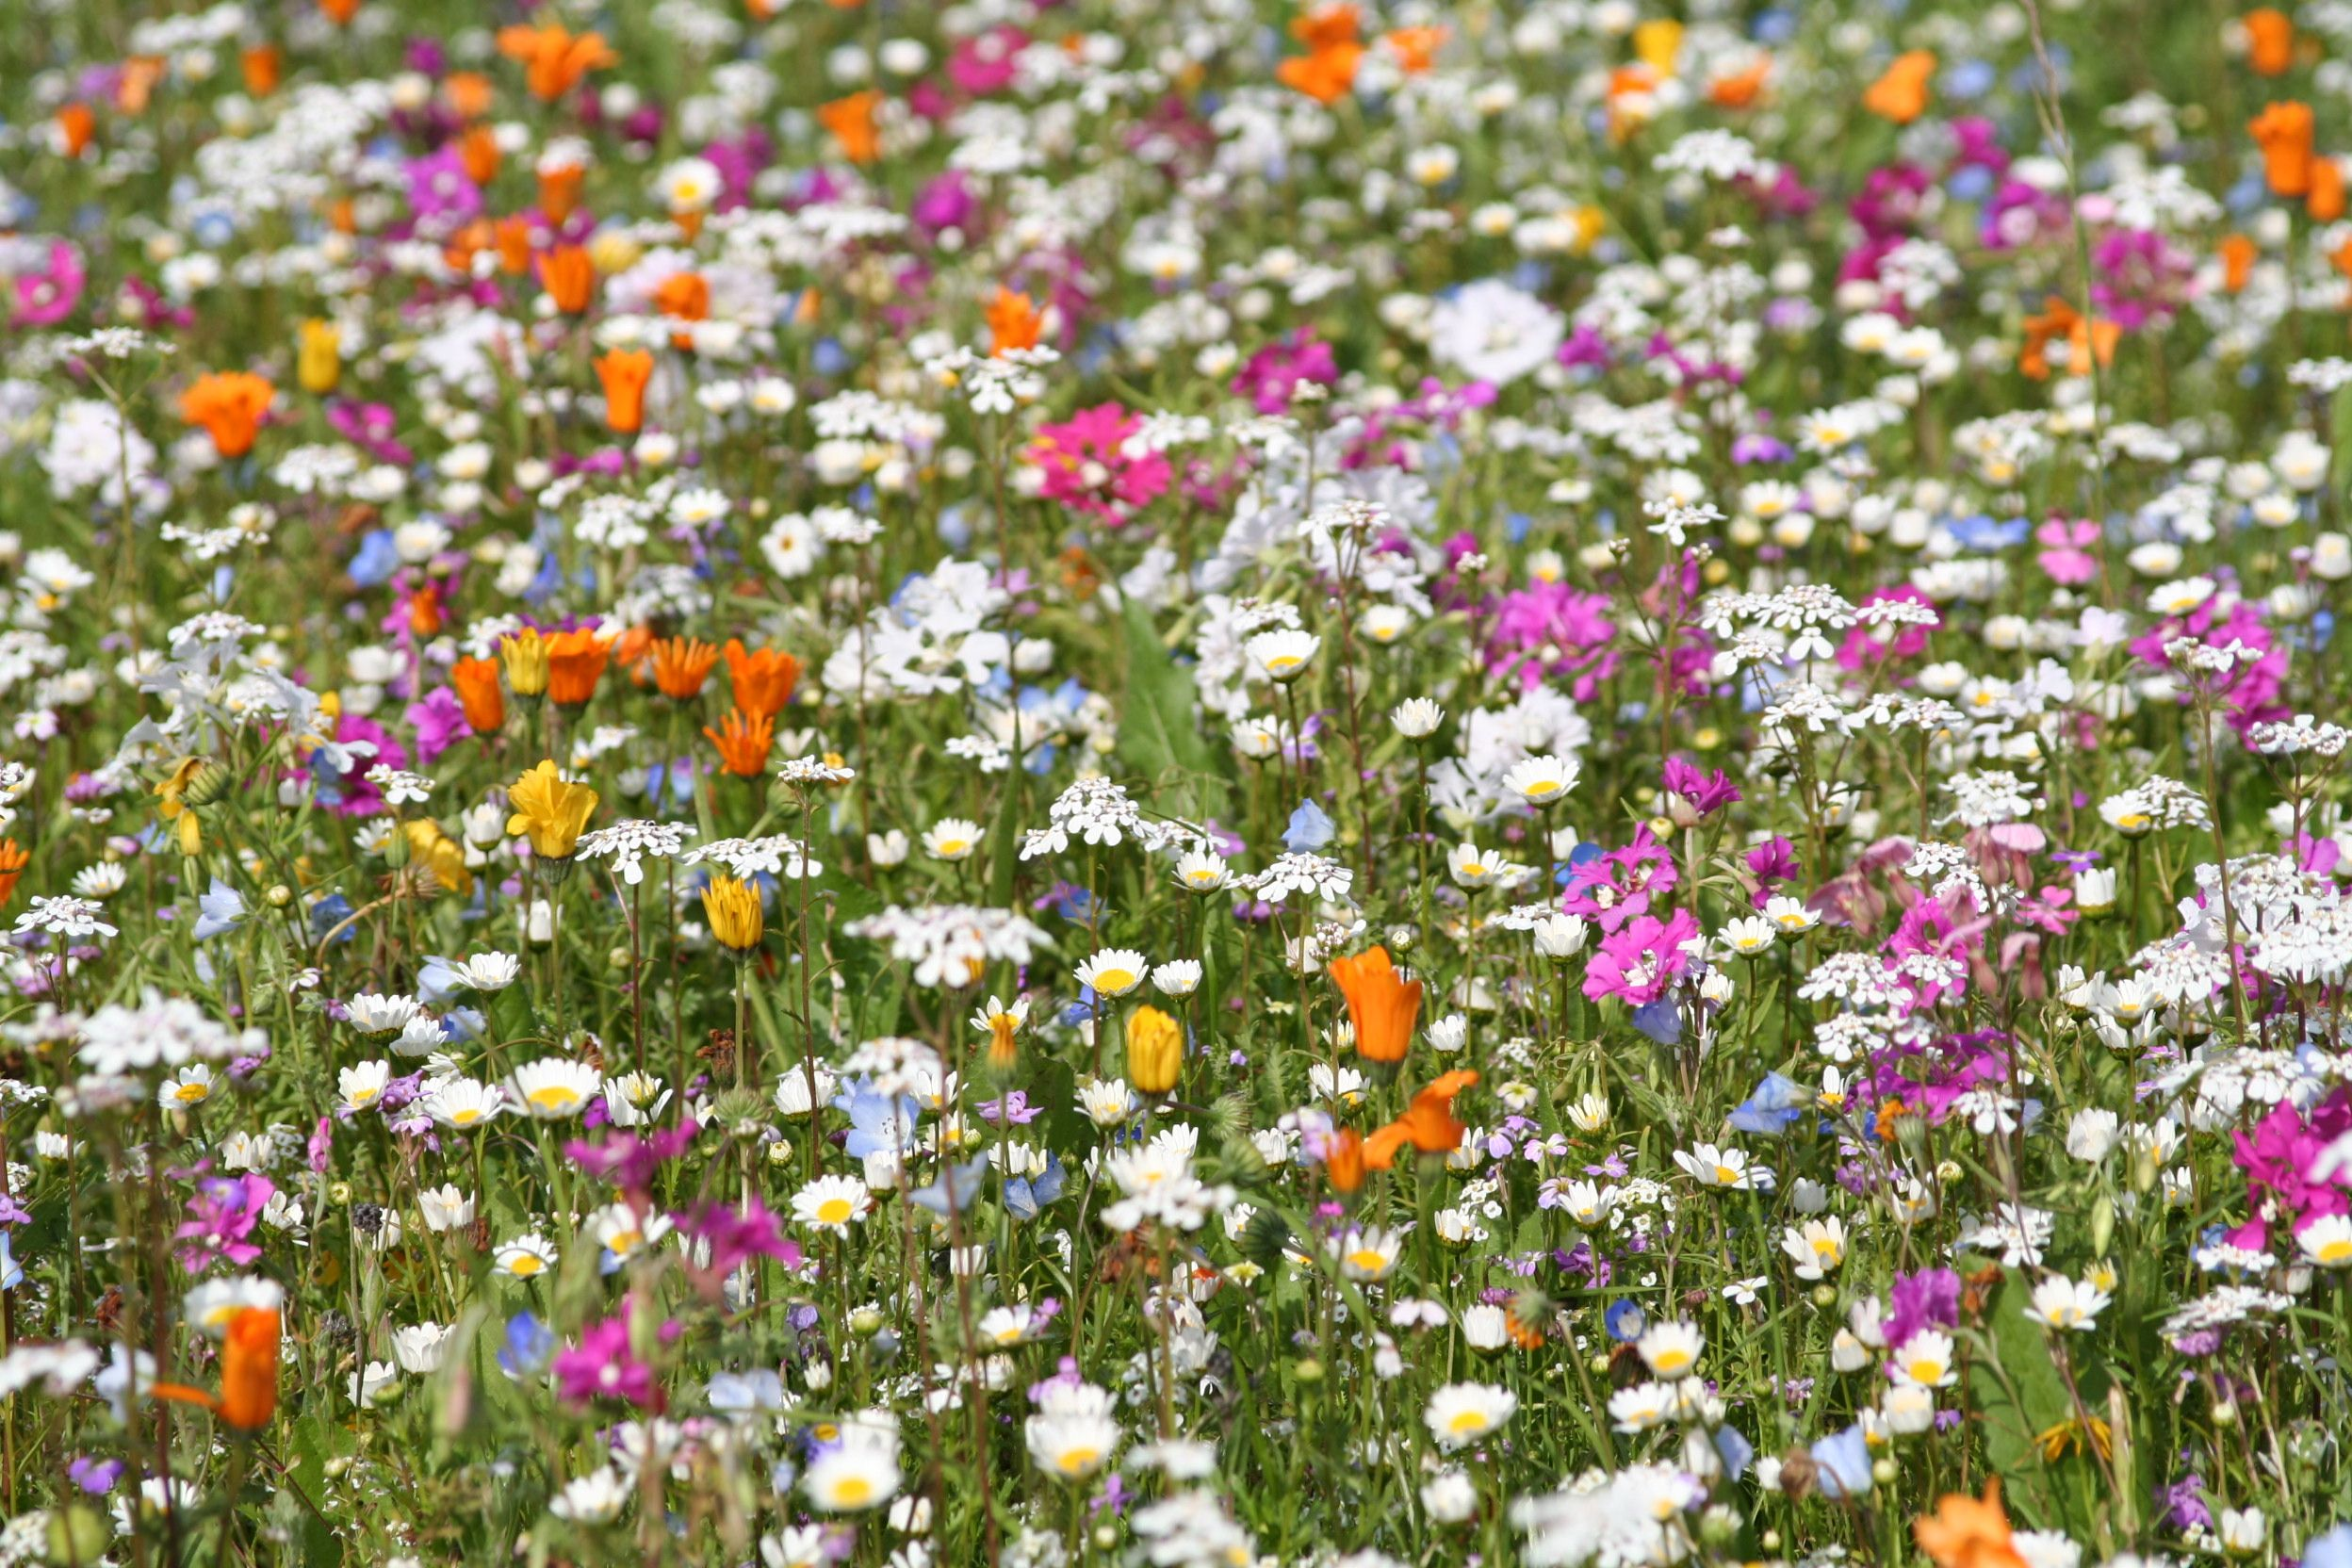 Sow this: if you're already longing for the freshness of the spring garden, now is the time to invest in a hardy annual/perennial seed mix for sowing next month